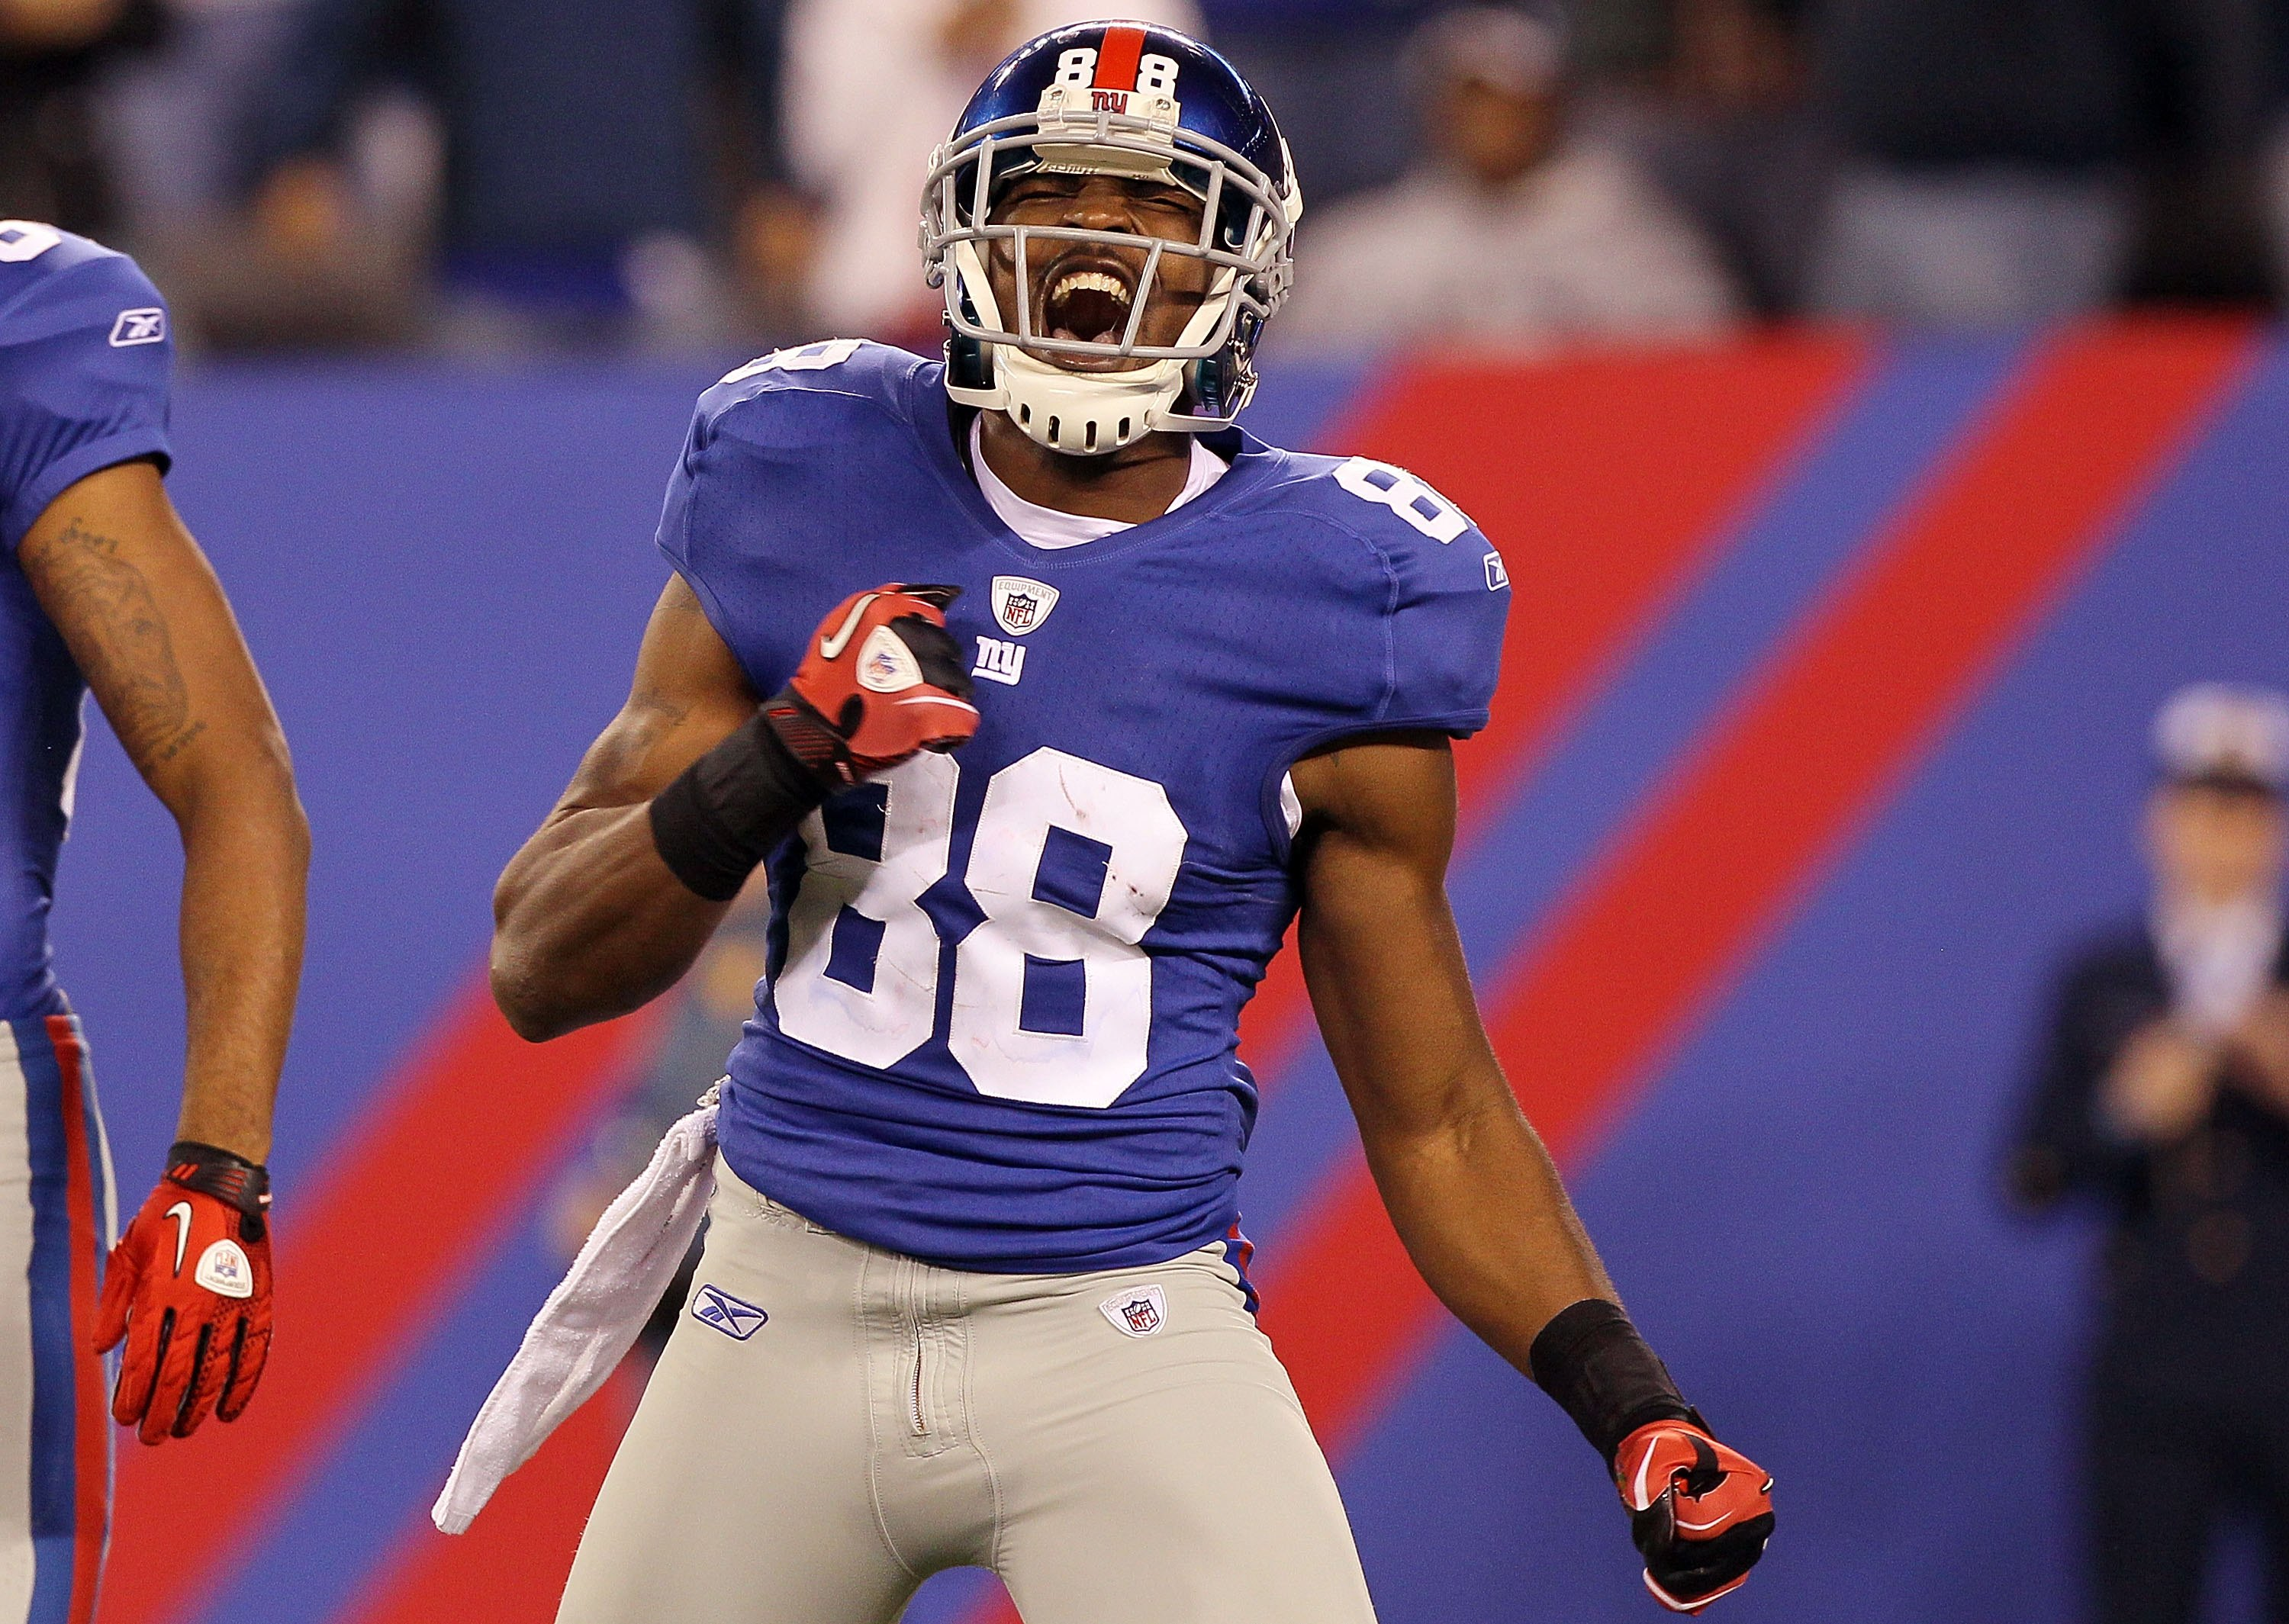 EAST RUTHERFORD, NJ - NOVEMBER 14:  Hakeem Nicks #88 of the New York Giants reacts against the Dallas Cowboys on November 14, 2010 at the New Meadowlands Stadium in East Rutherford, New Jersey. The Cowboys defeated the Giants 33-20.  (Photo by Jim McIsaac